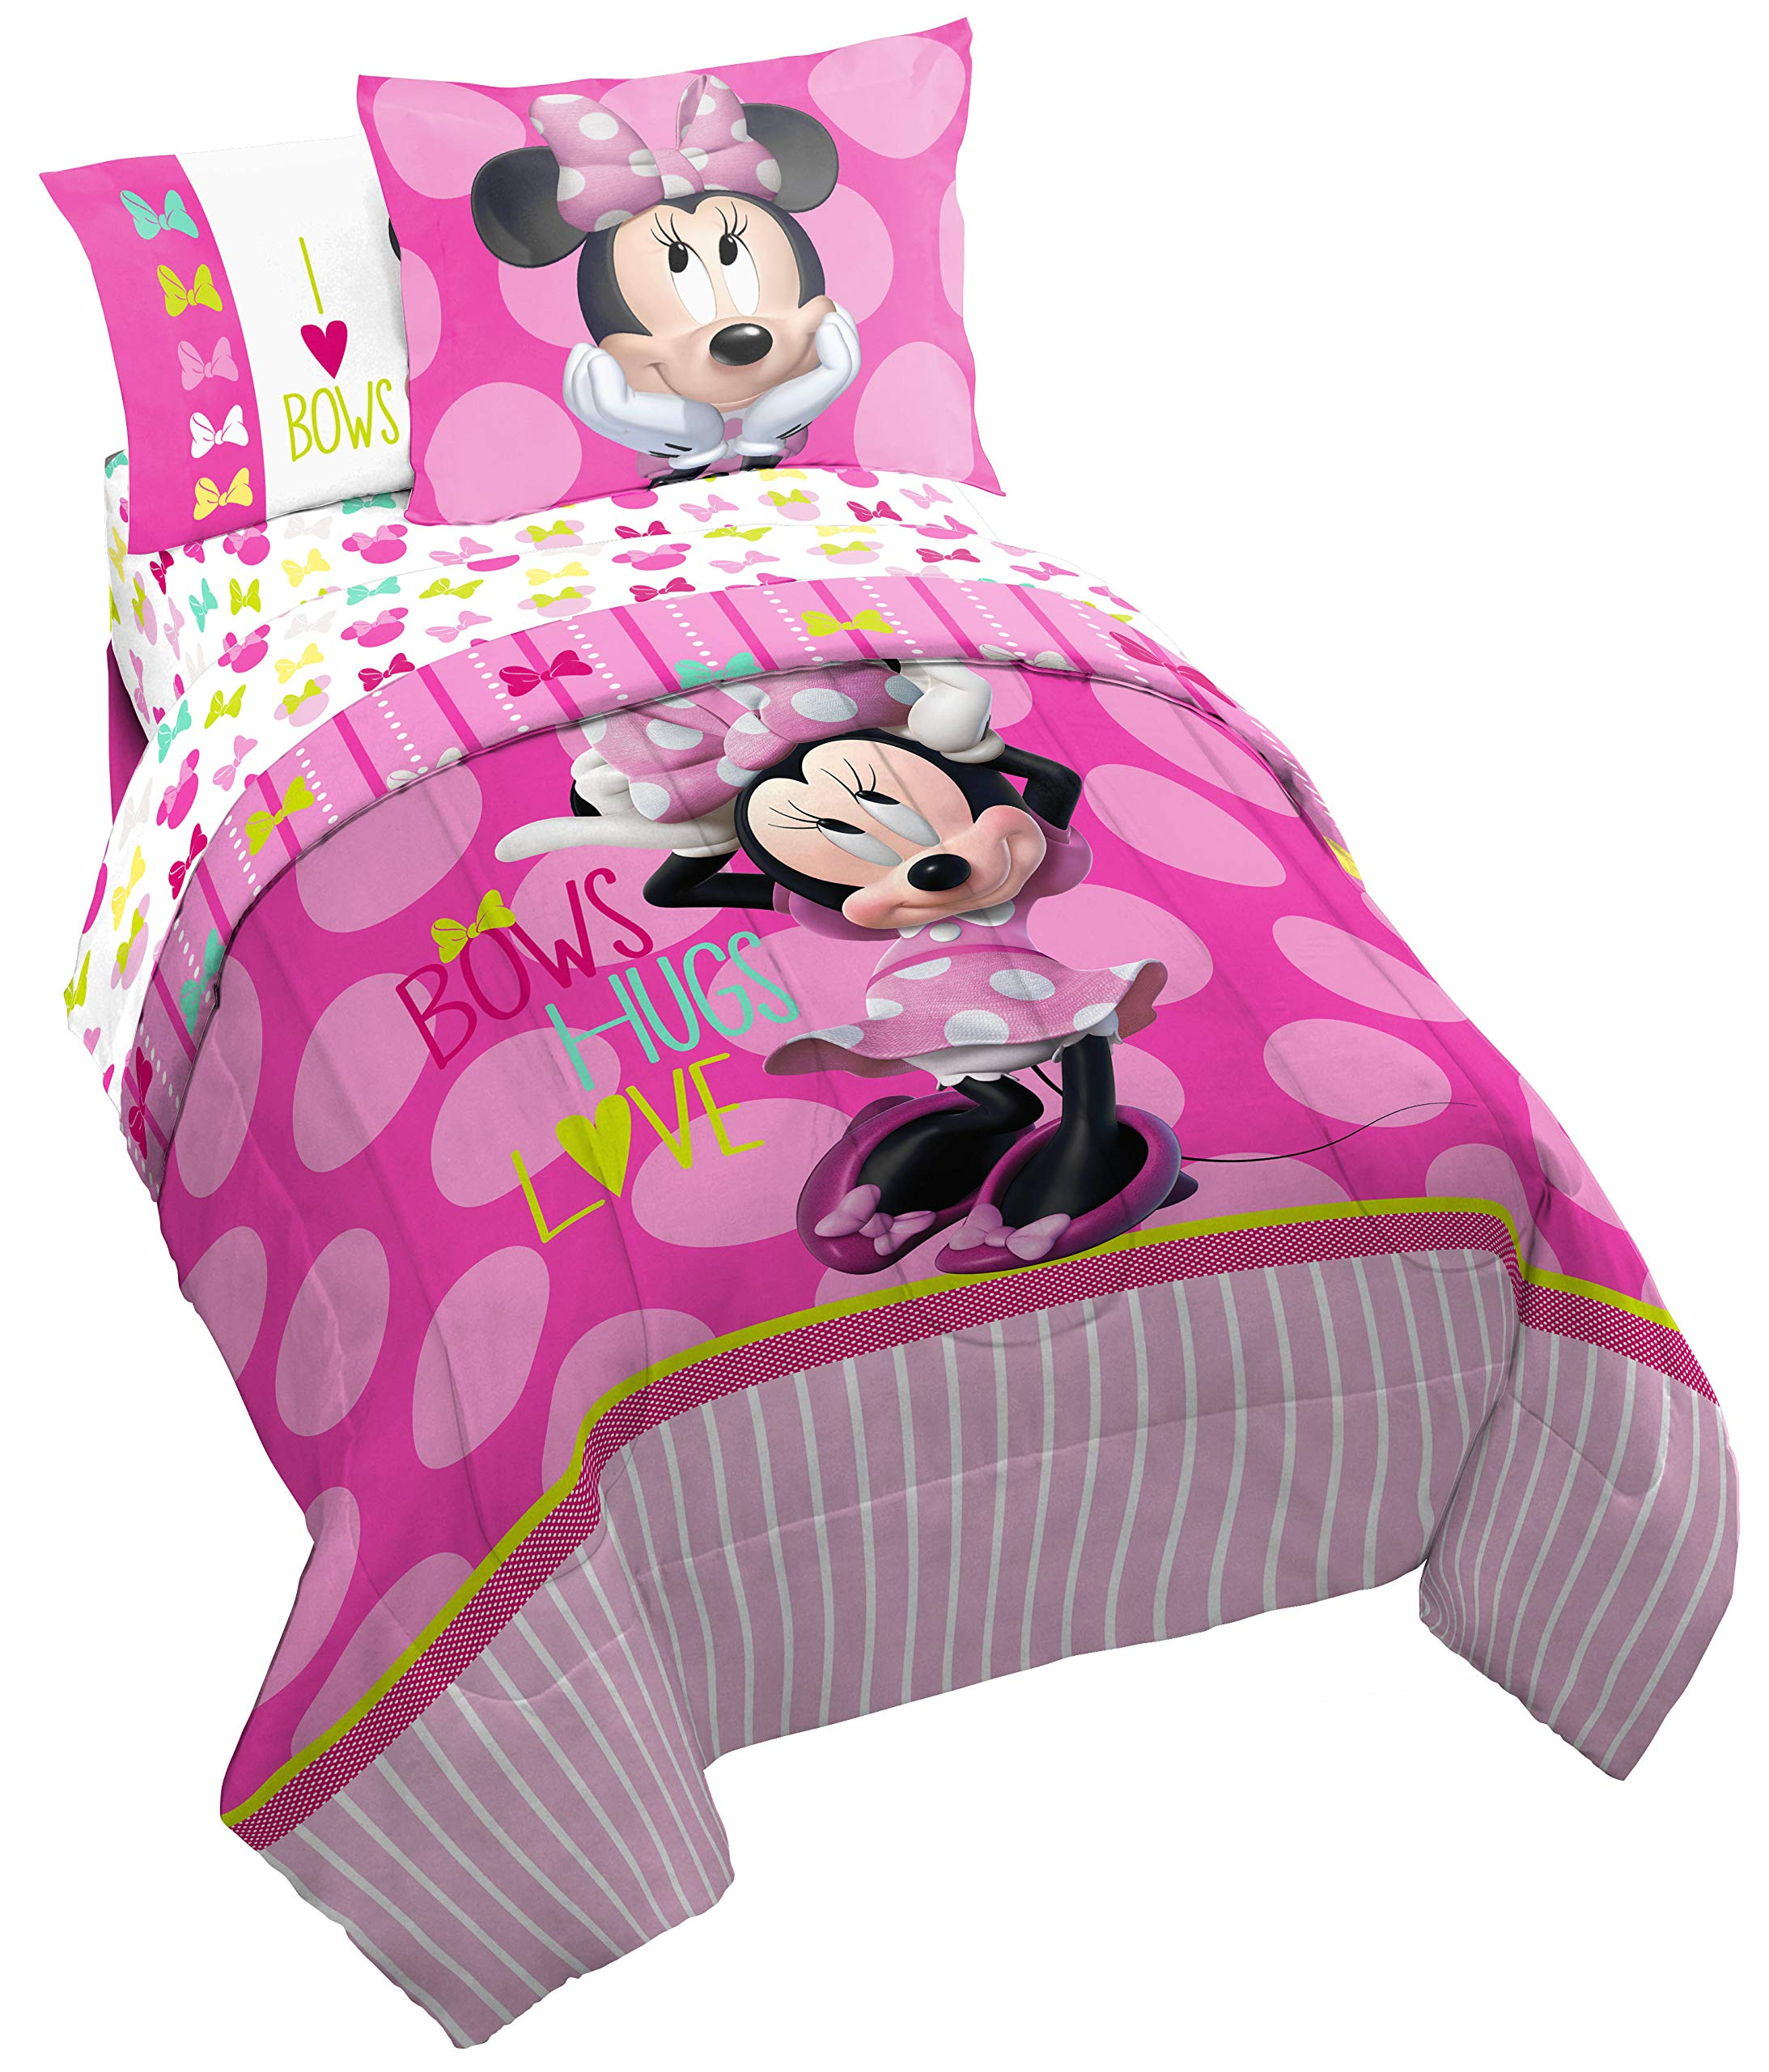 Disney Minnie Mouse Bigger Bow Twin Comforter - Super Soft Kids Reversible Bedding features Minnie Mouse - Fade Resistant Polyester Includes 1 Bonus Sham (Official Disney Product) by Jay Franco